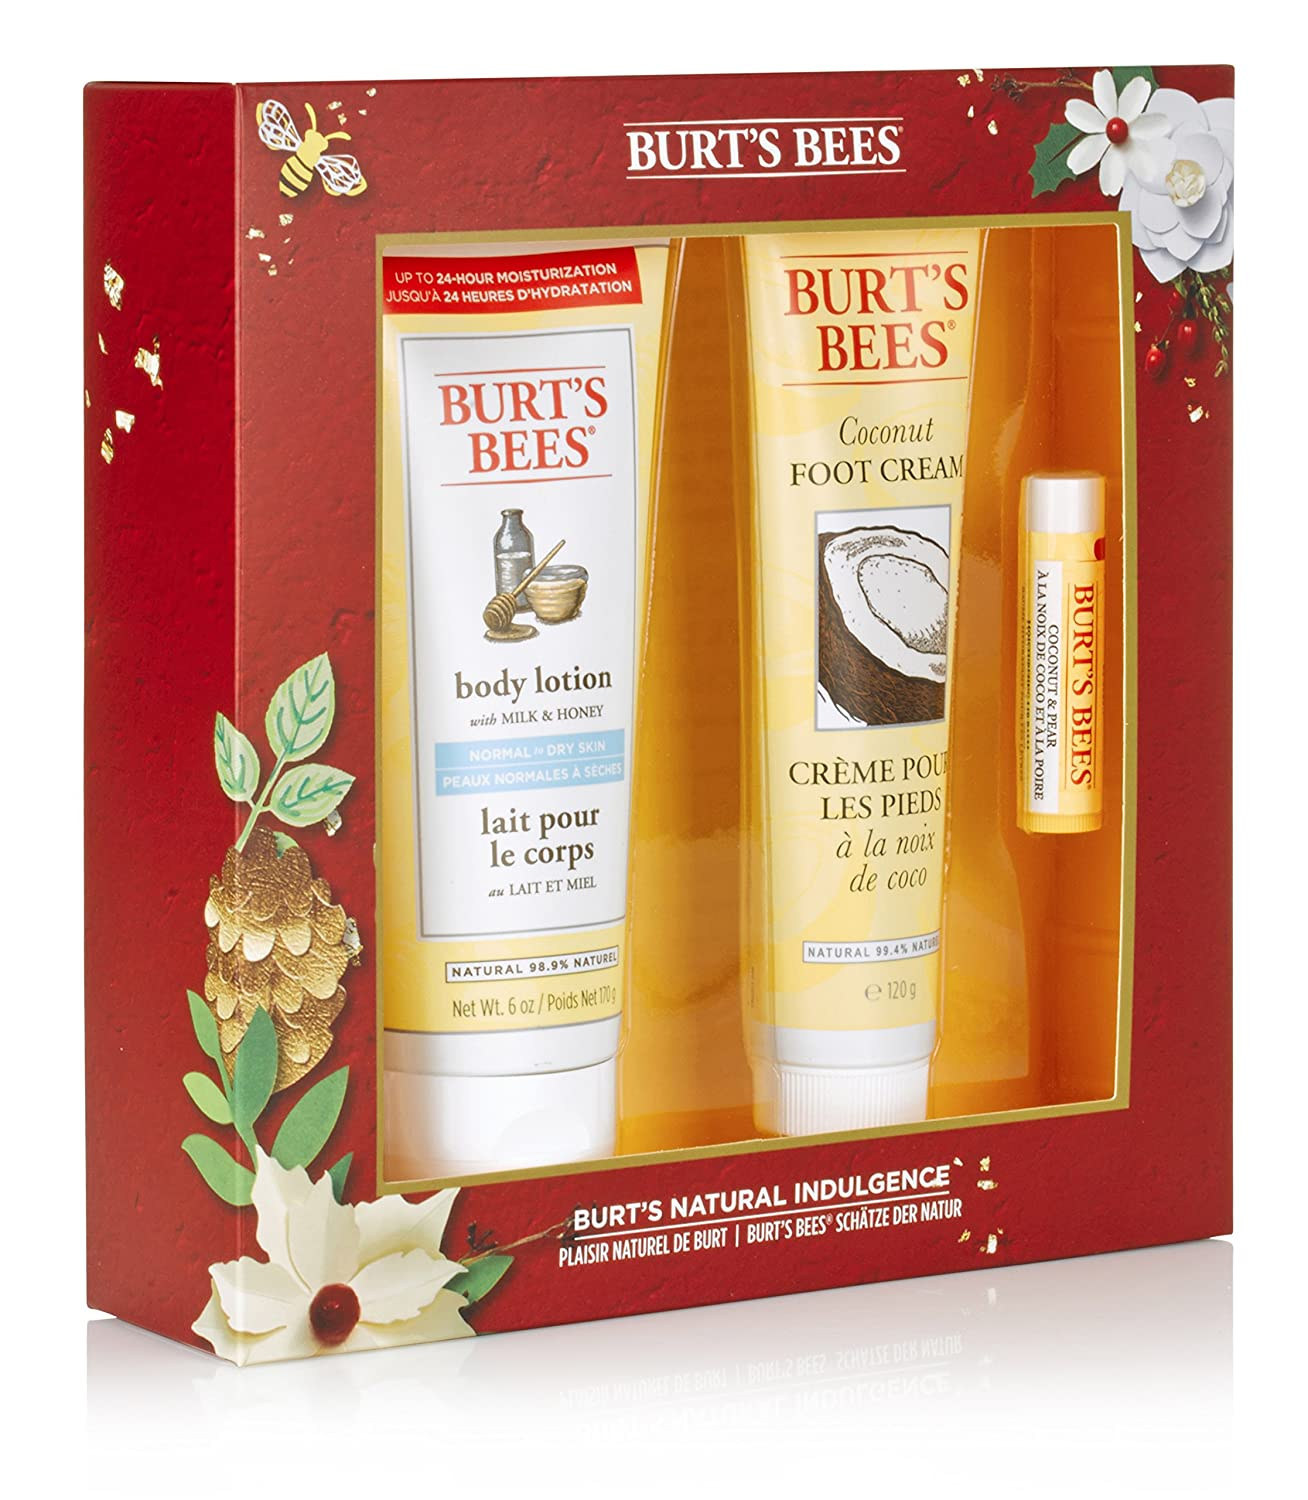 Burt's Bees Natural Indulgence Gift Set Cbee Europe Ltd 21244-14